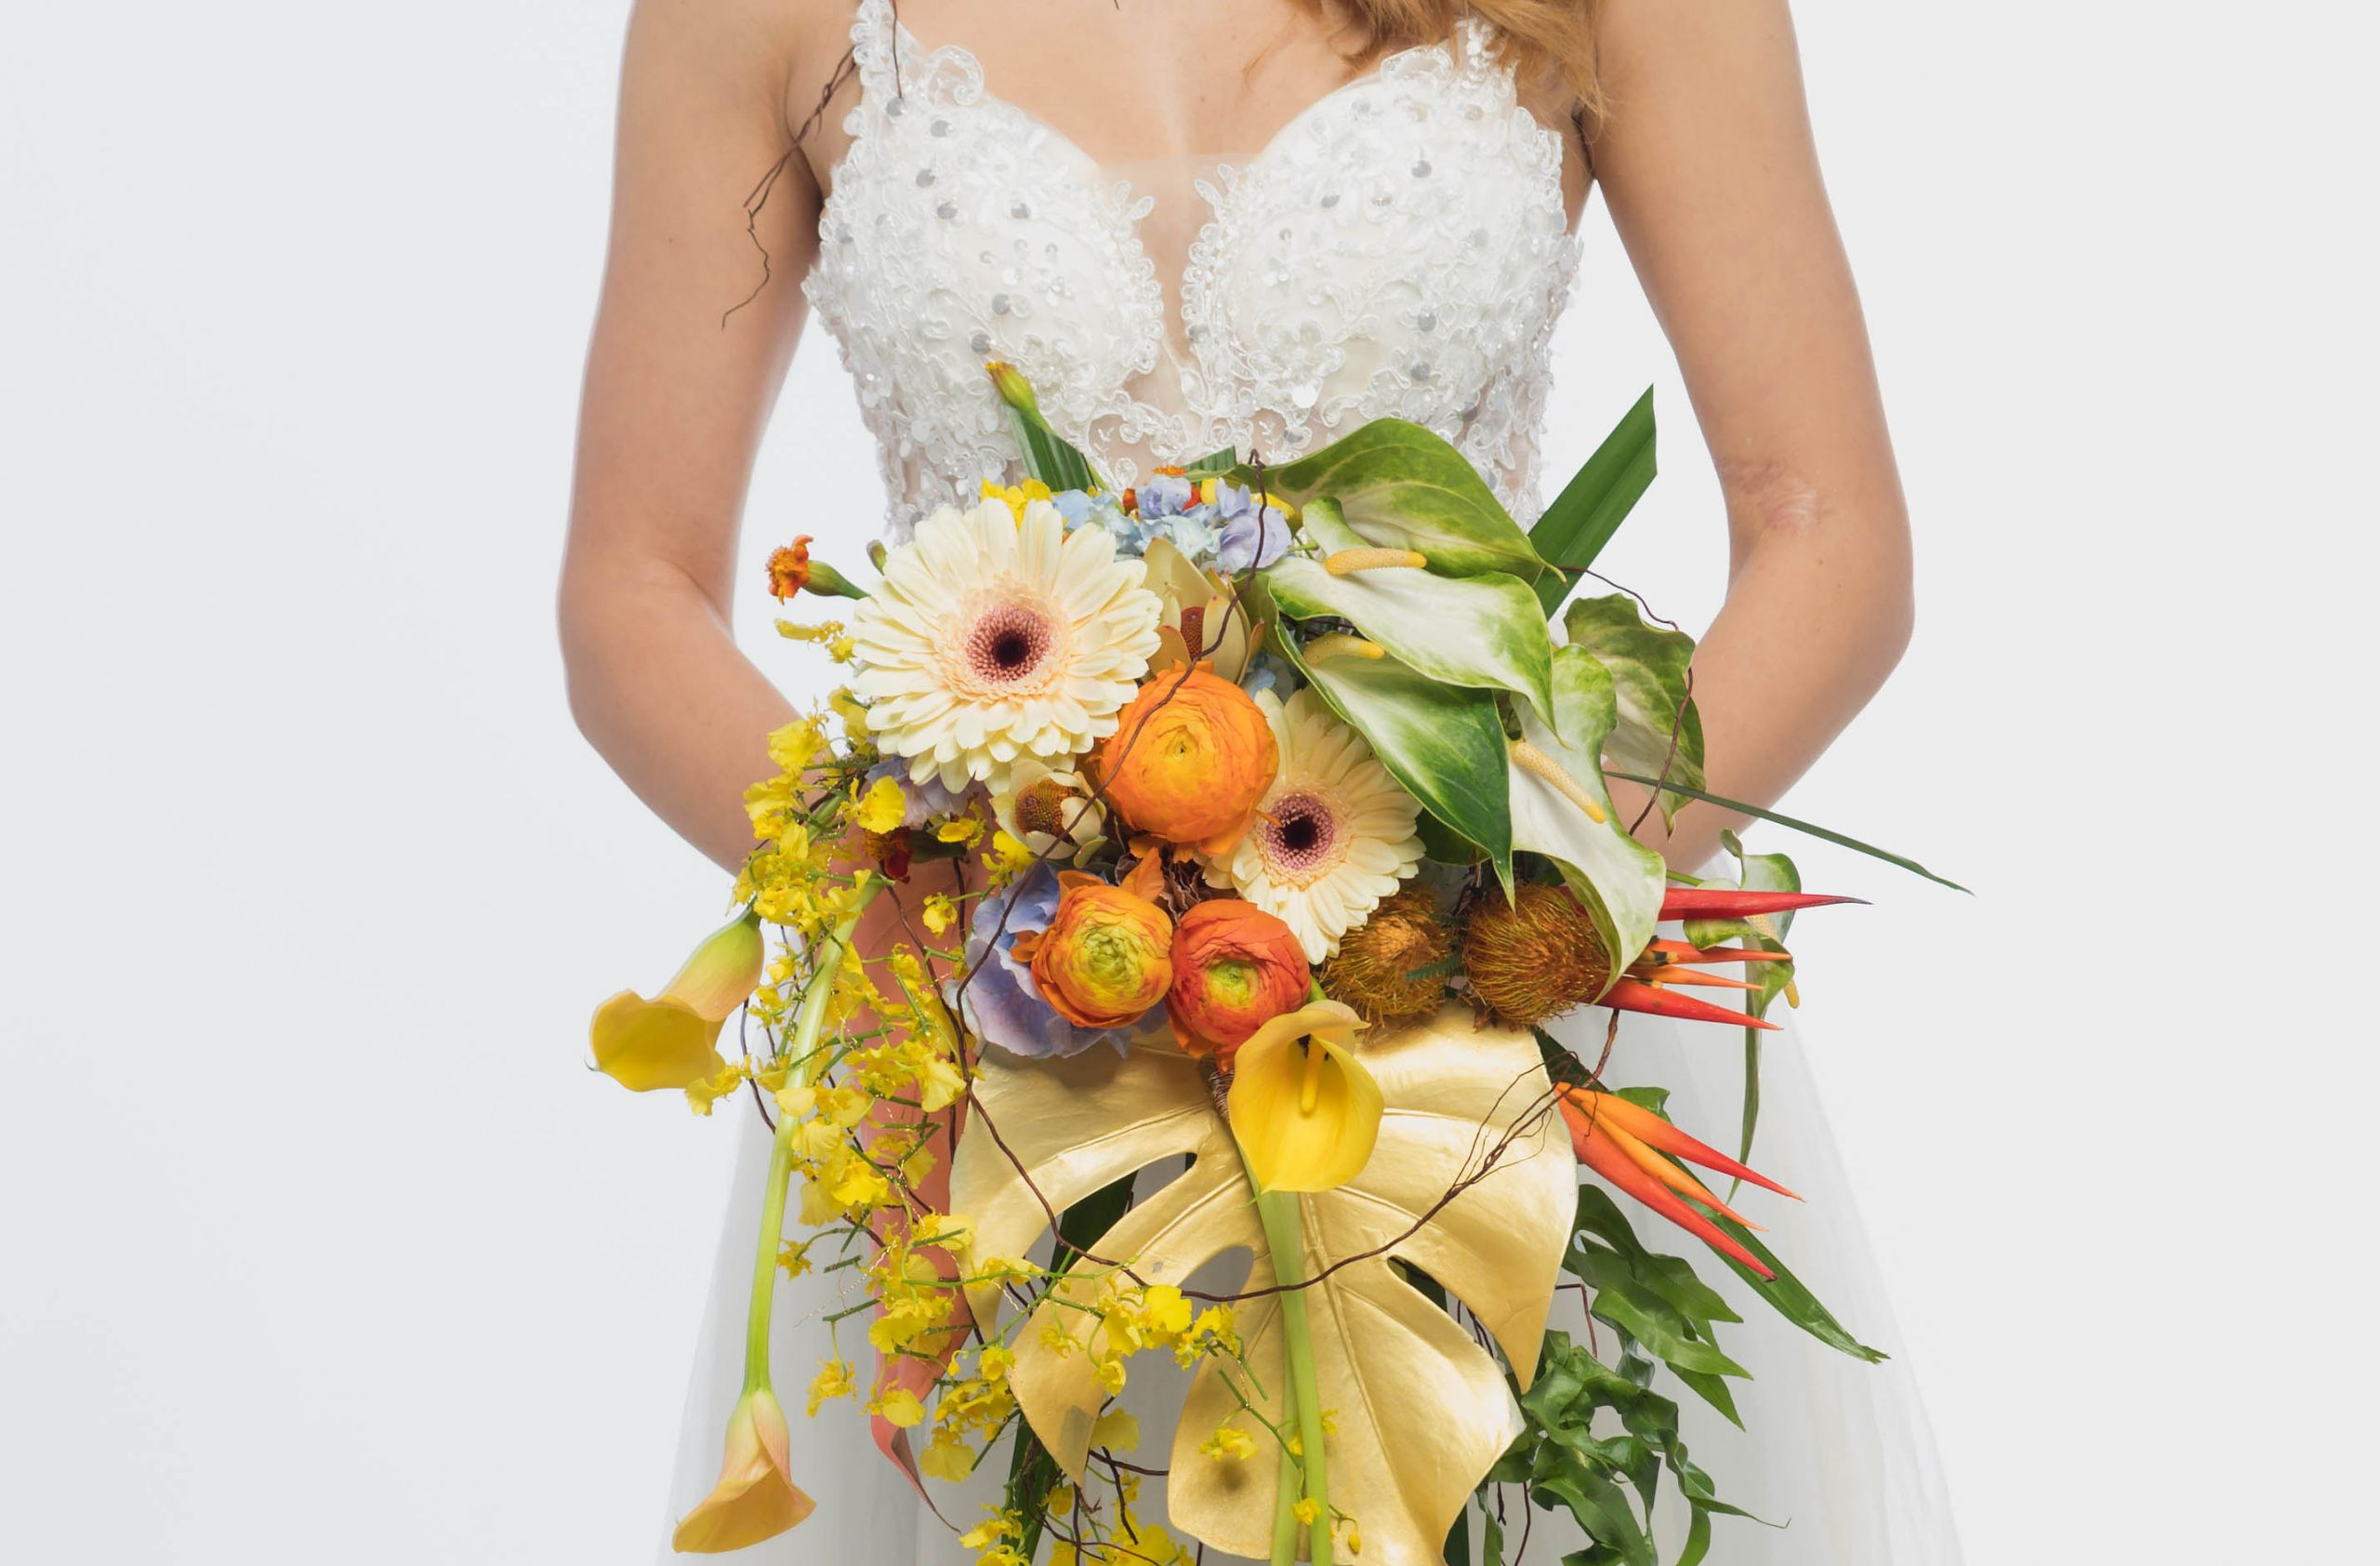 Wedding Flowers & Plants from Hawai'i Video Airing on Kaua'i Cable TV, Online